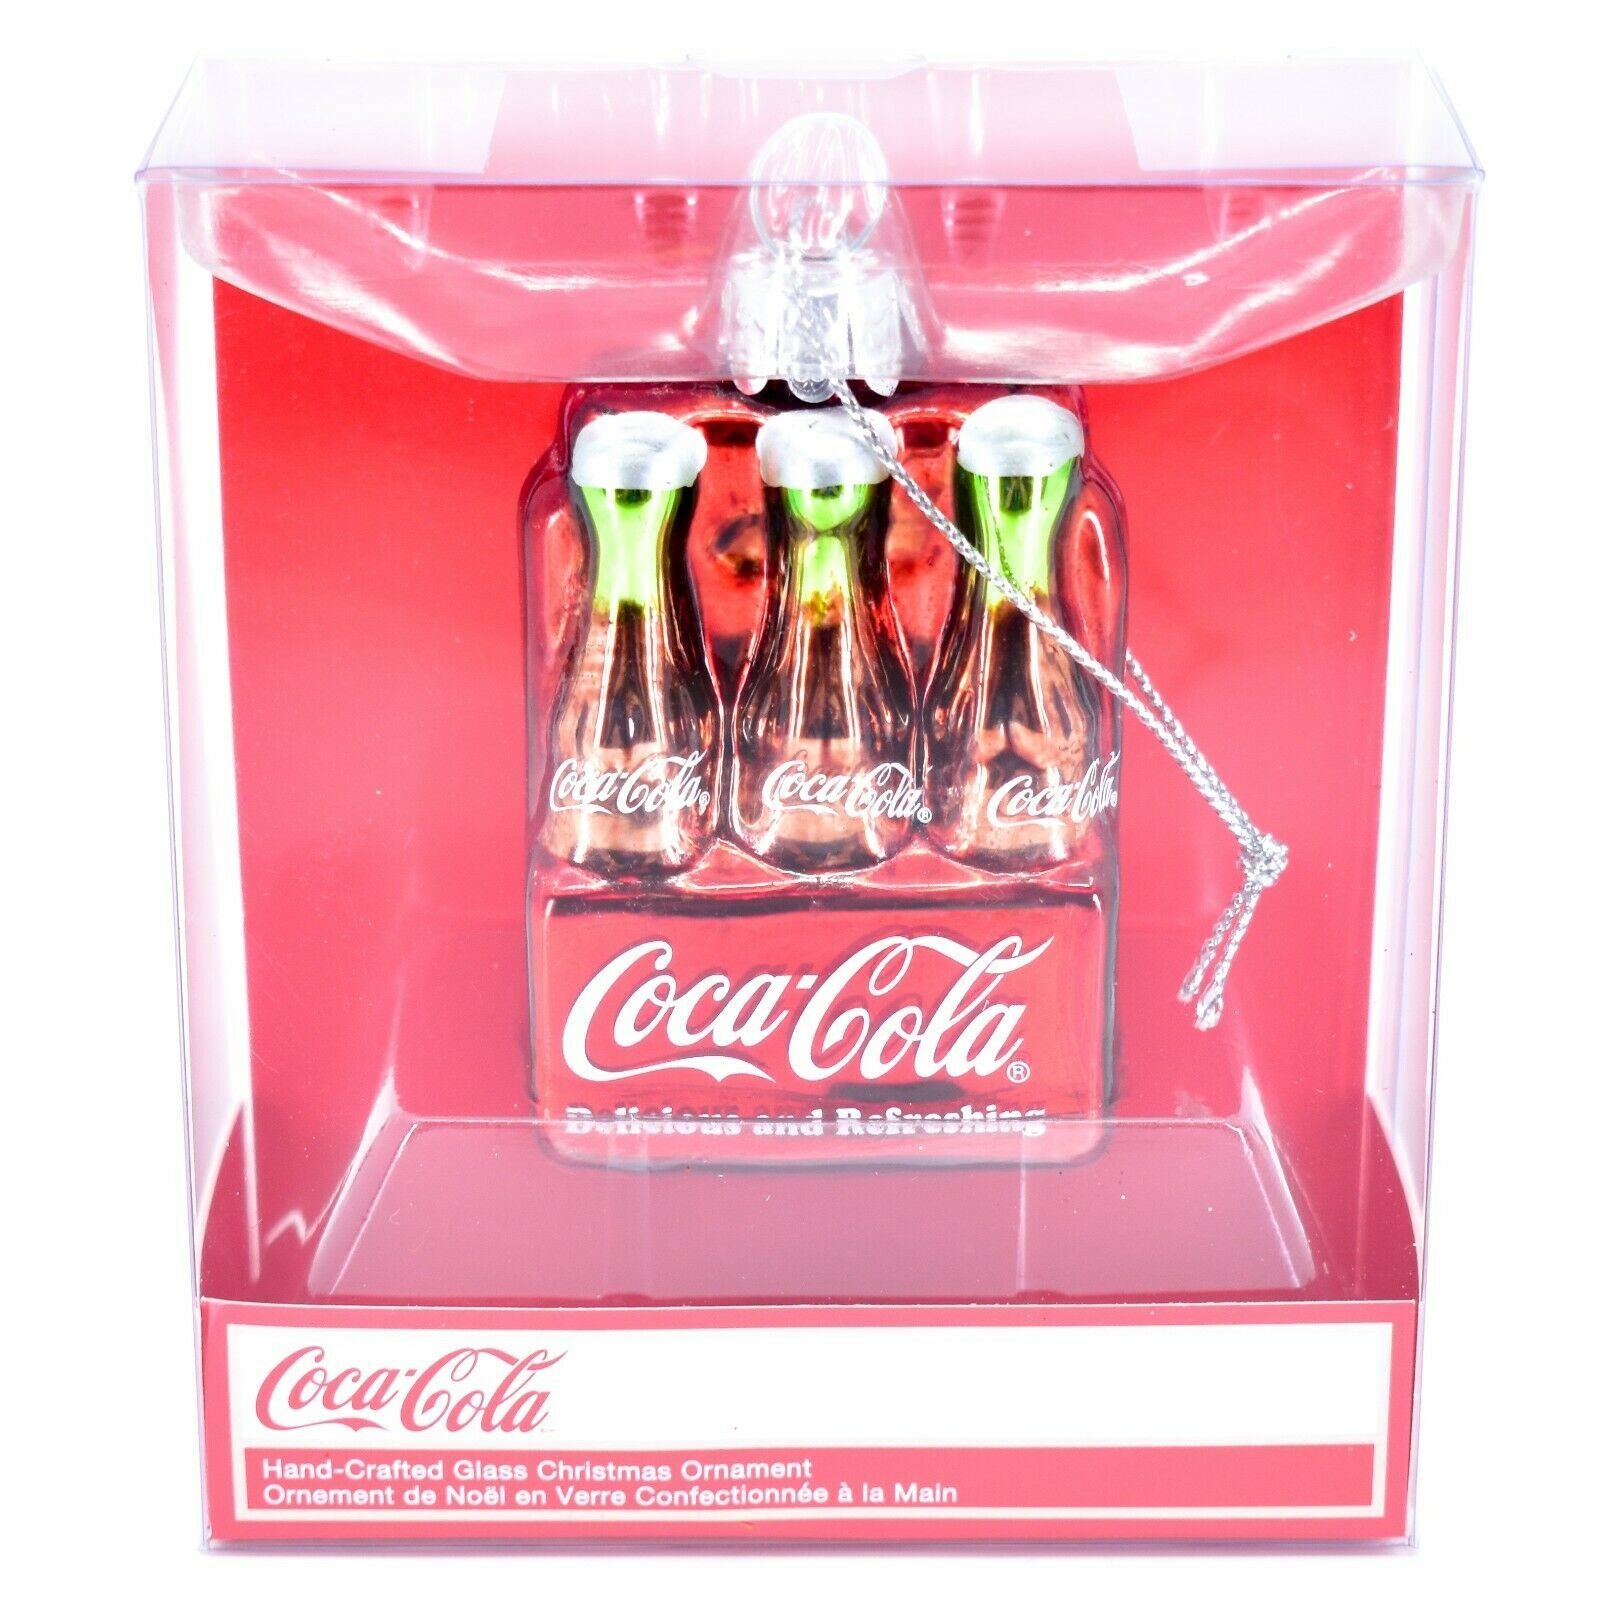 "Kurt S. Adler Coca-Cola Bottles 2.75"" Hand-Crafted Glass Christmas Ornament"